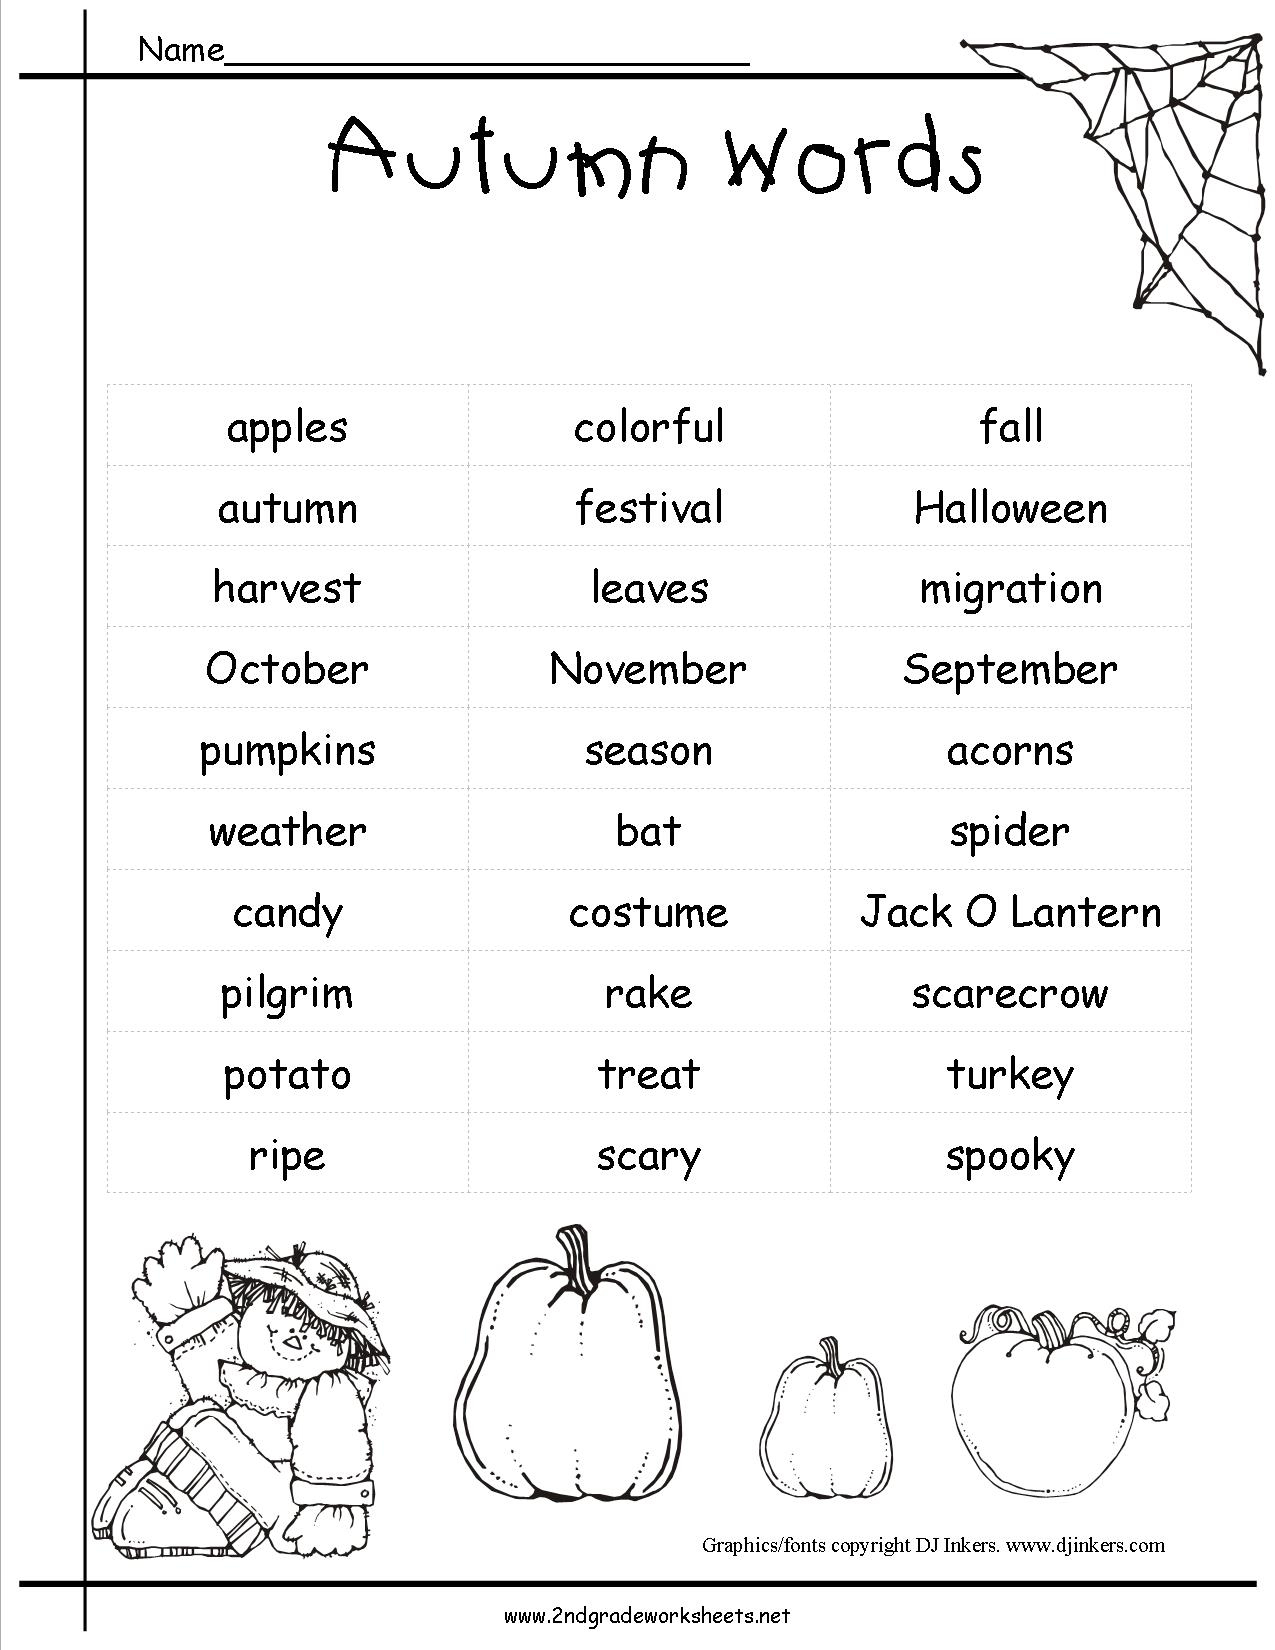 Autumn Theme Worksheets And Printouts. | Printable Fall Worksheets